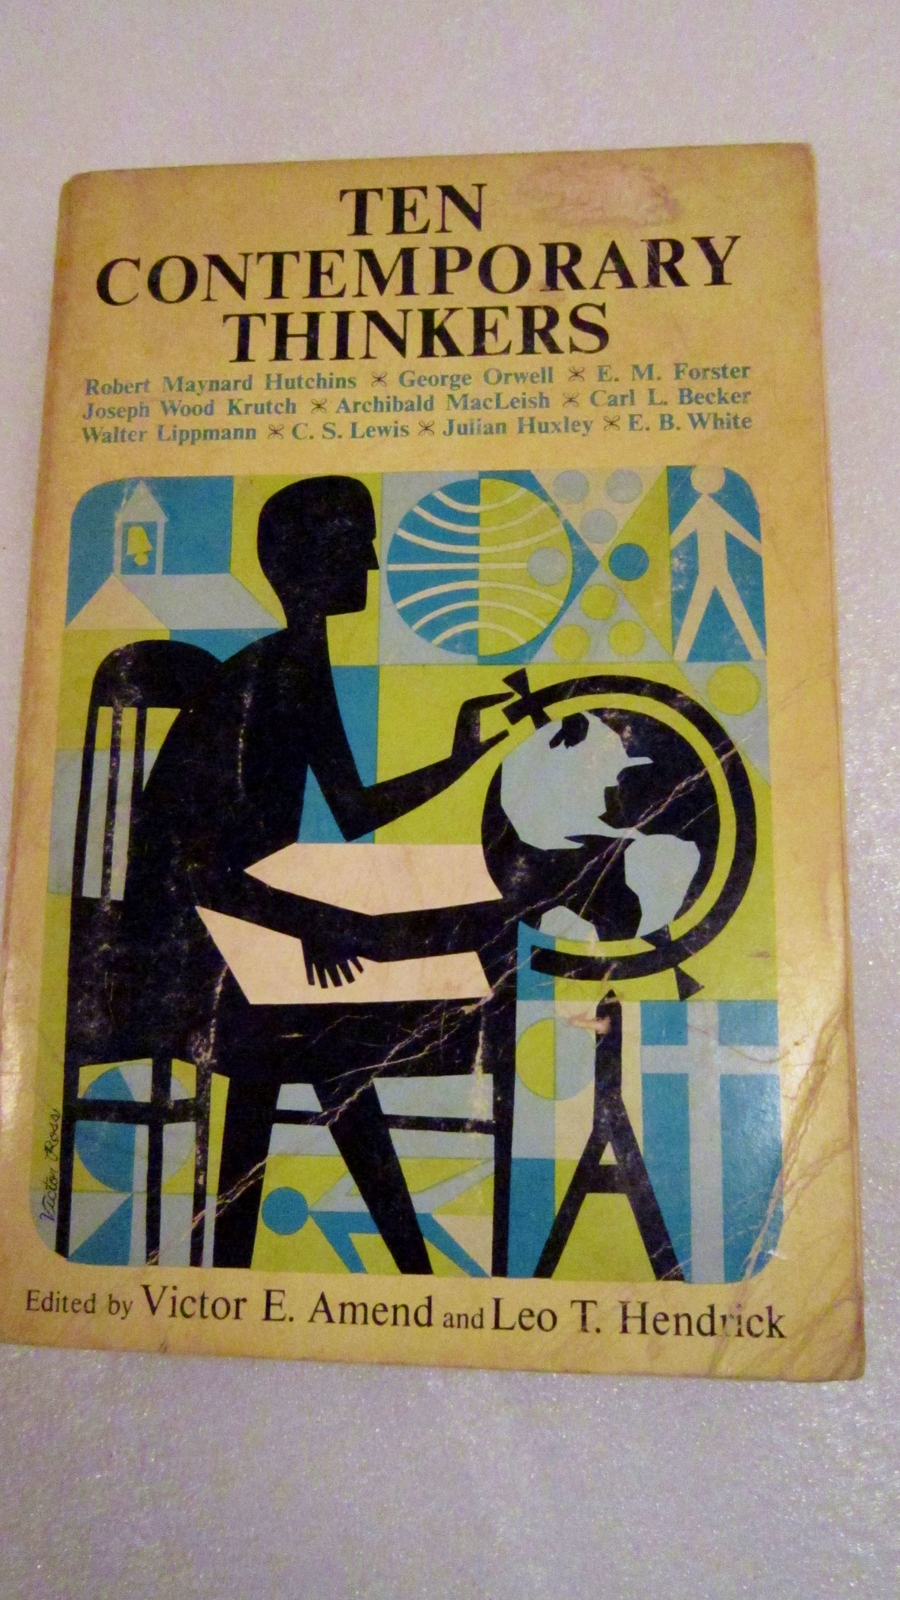 essays by c. s. lewis Cs lewis' book, mere christianity cs lewis begins his book, mere christianity, by introducing the law of right and wrong or the laws of nature.